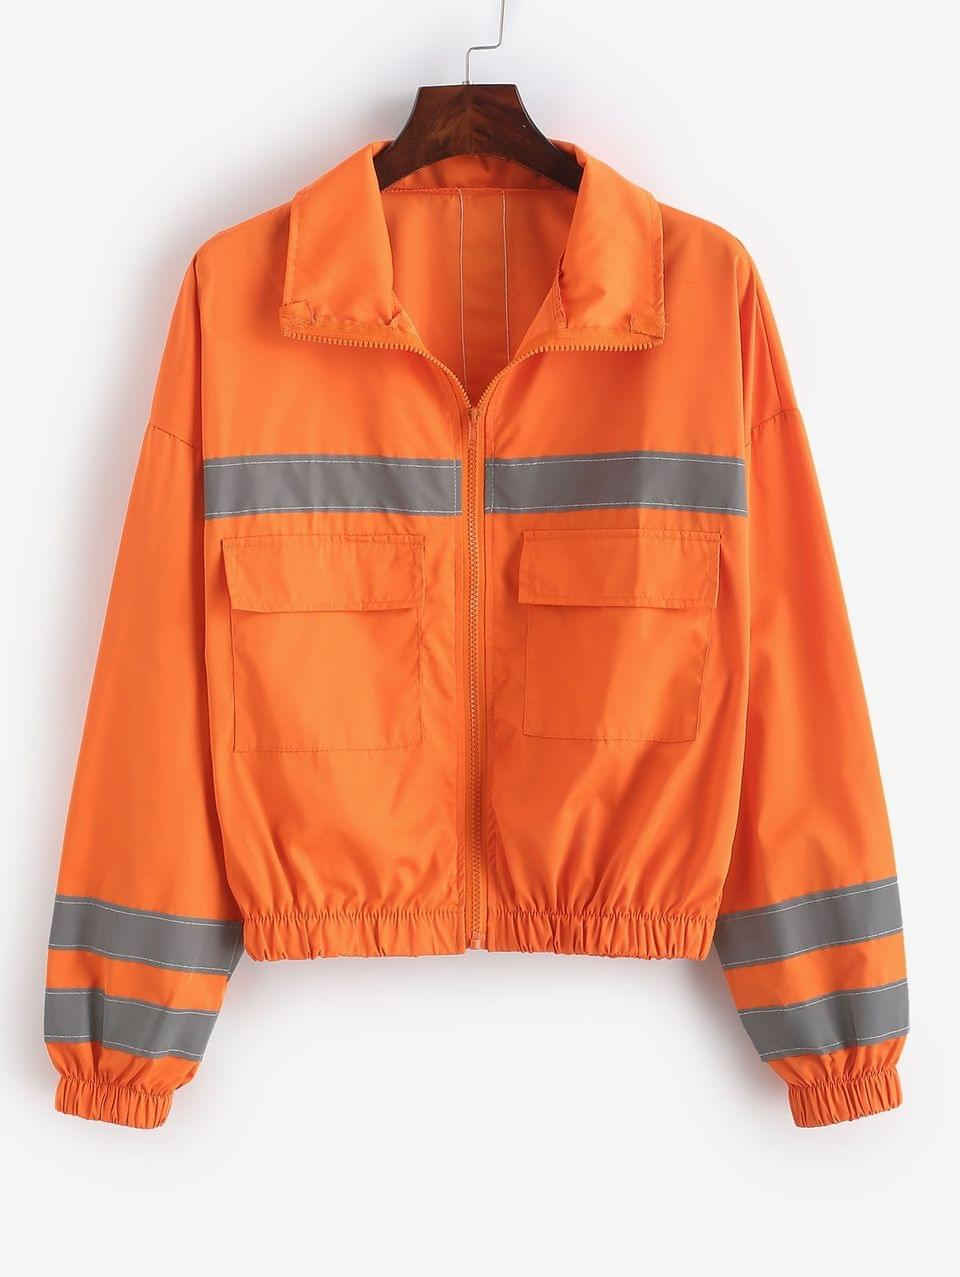 Women's Reflective Neon Drop Shoulder Pocket Zip Jacket - Orange S